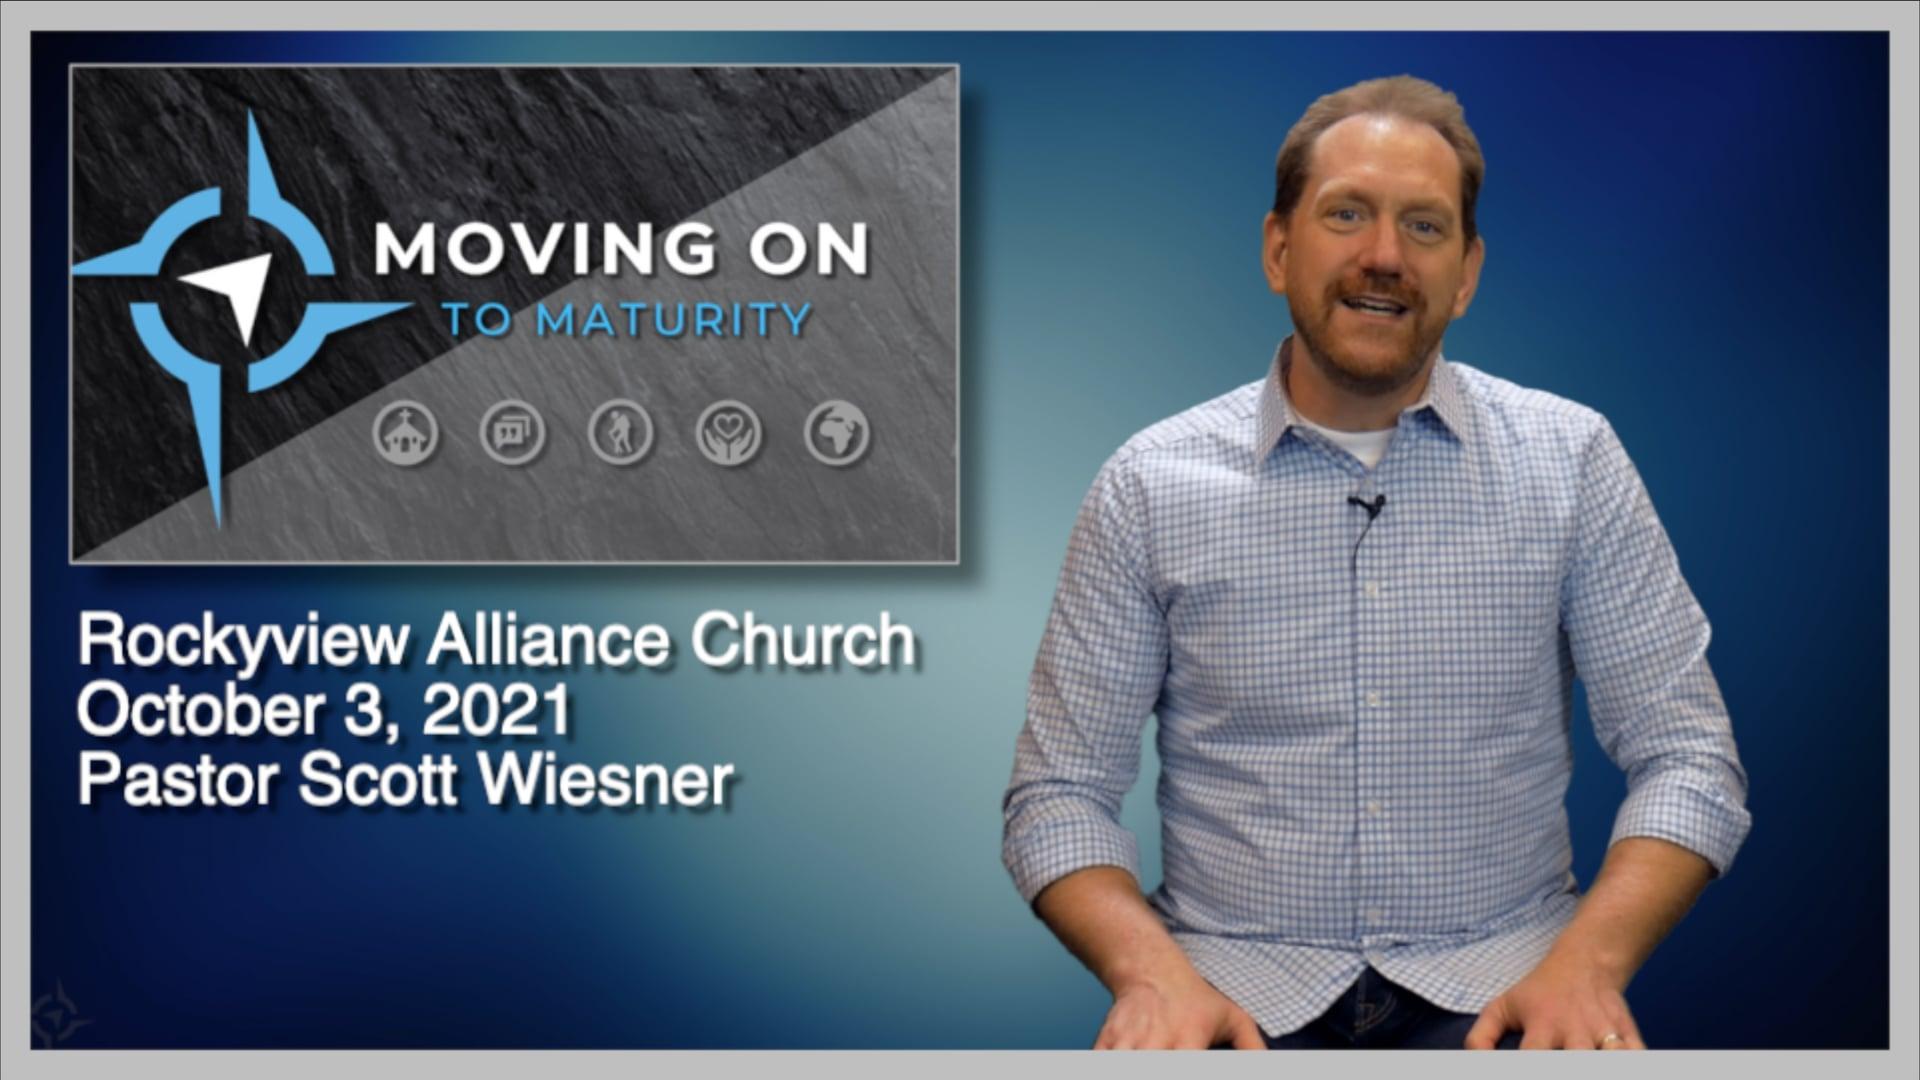 October 3, 2021 - Scott Wiesner - Moving On To Maturity